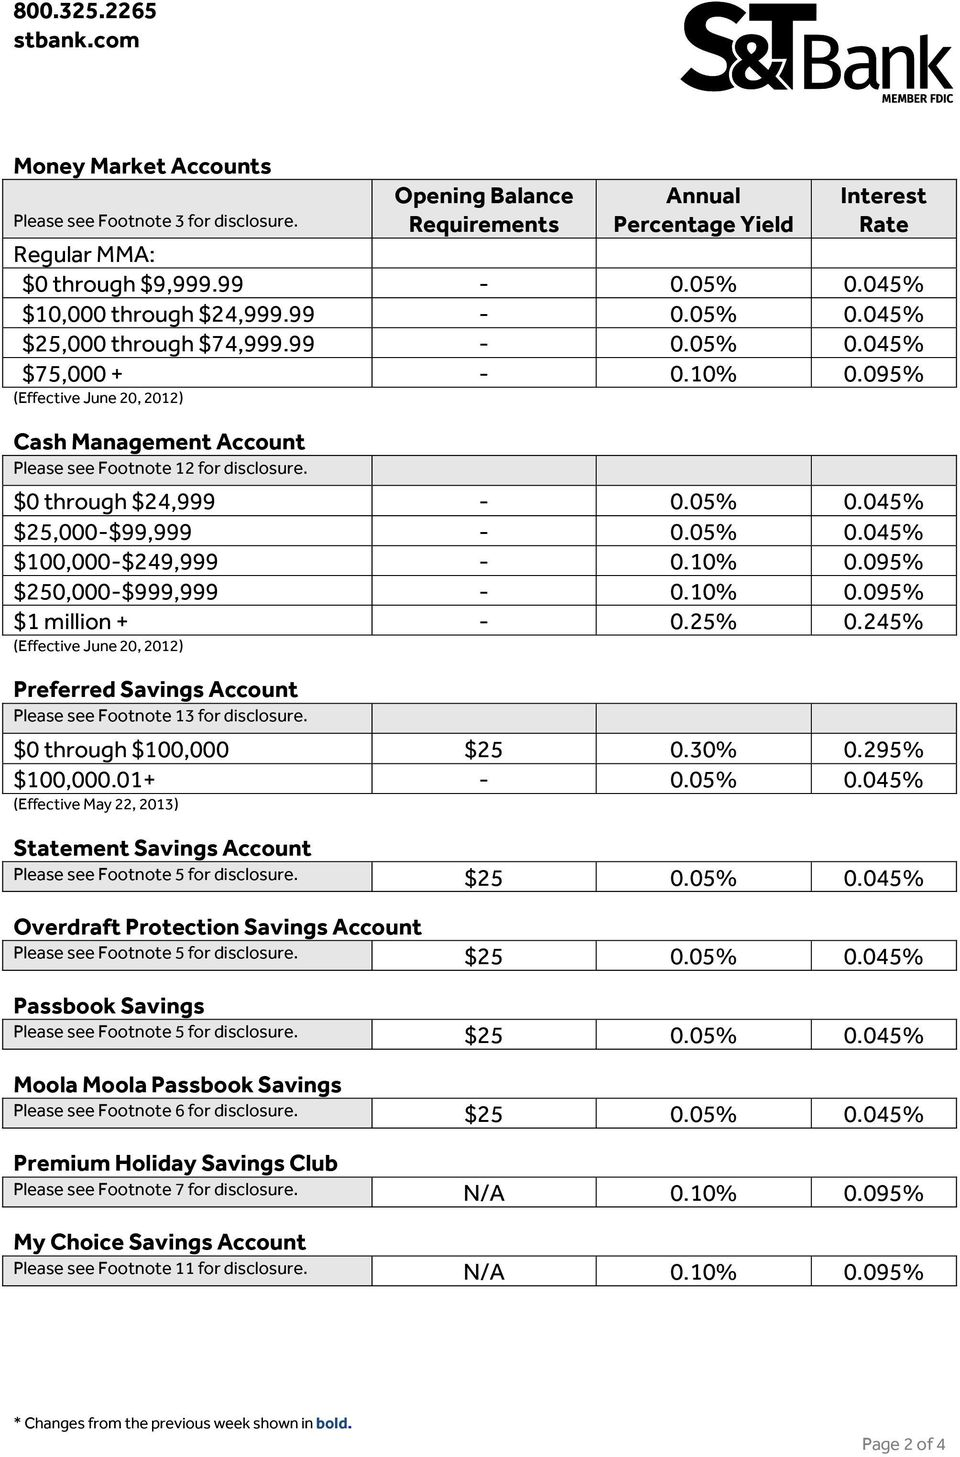 10% 0.095% $1 million + - 0.25% 0.245% (Effective June 20, 2012) Preferred Savings Account Please see Footnote 13 for disclosure. $0 through $100,000 $25 0.30% 0.295% $100,000.01+ - 0.05% 0.